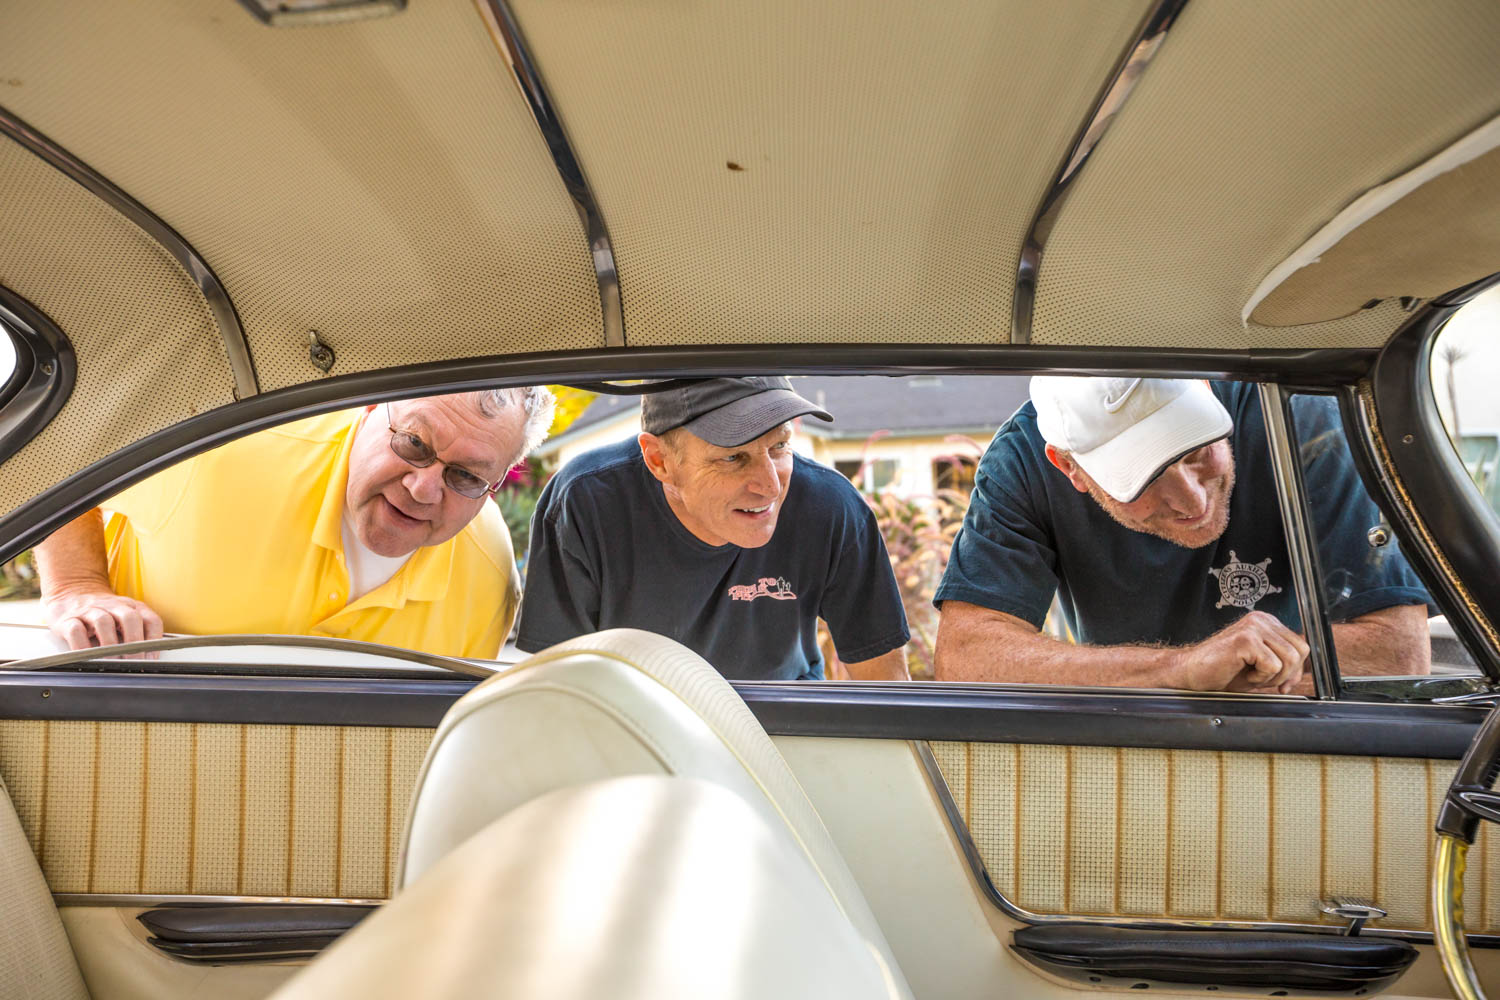 Metzelaar (from left), Stein, and Graves check out the ride for their retro road trip.